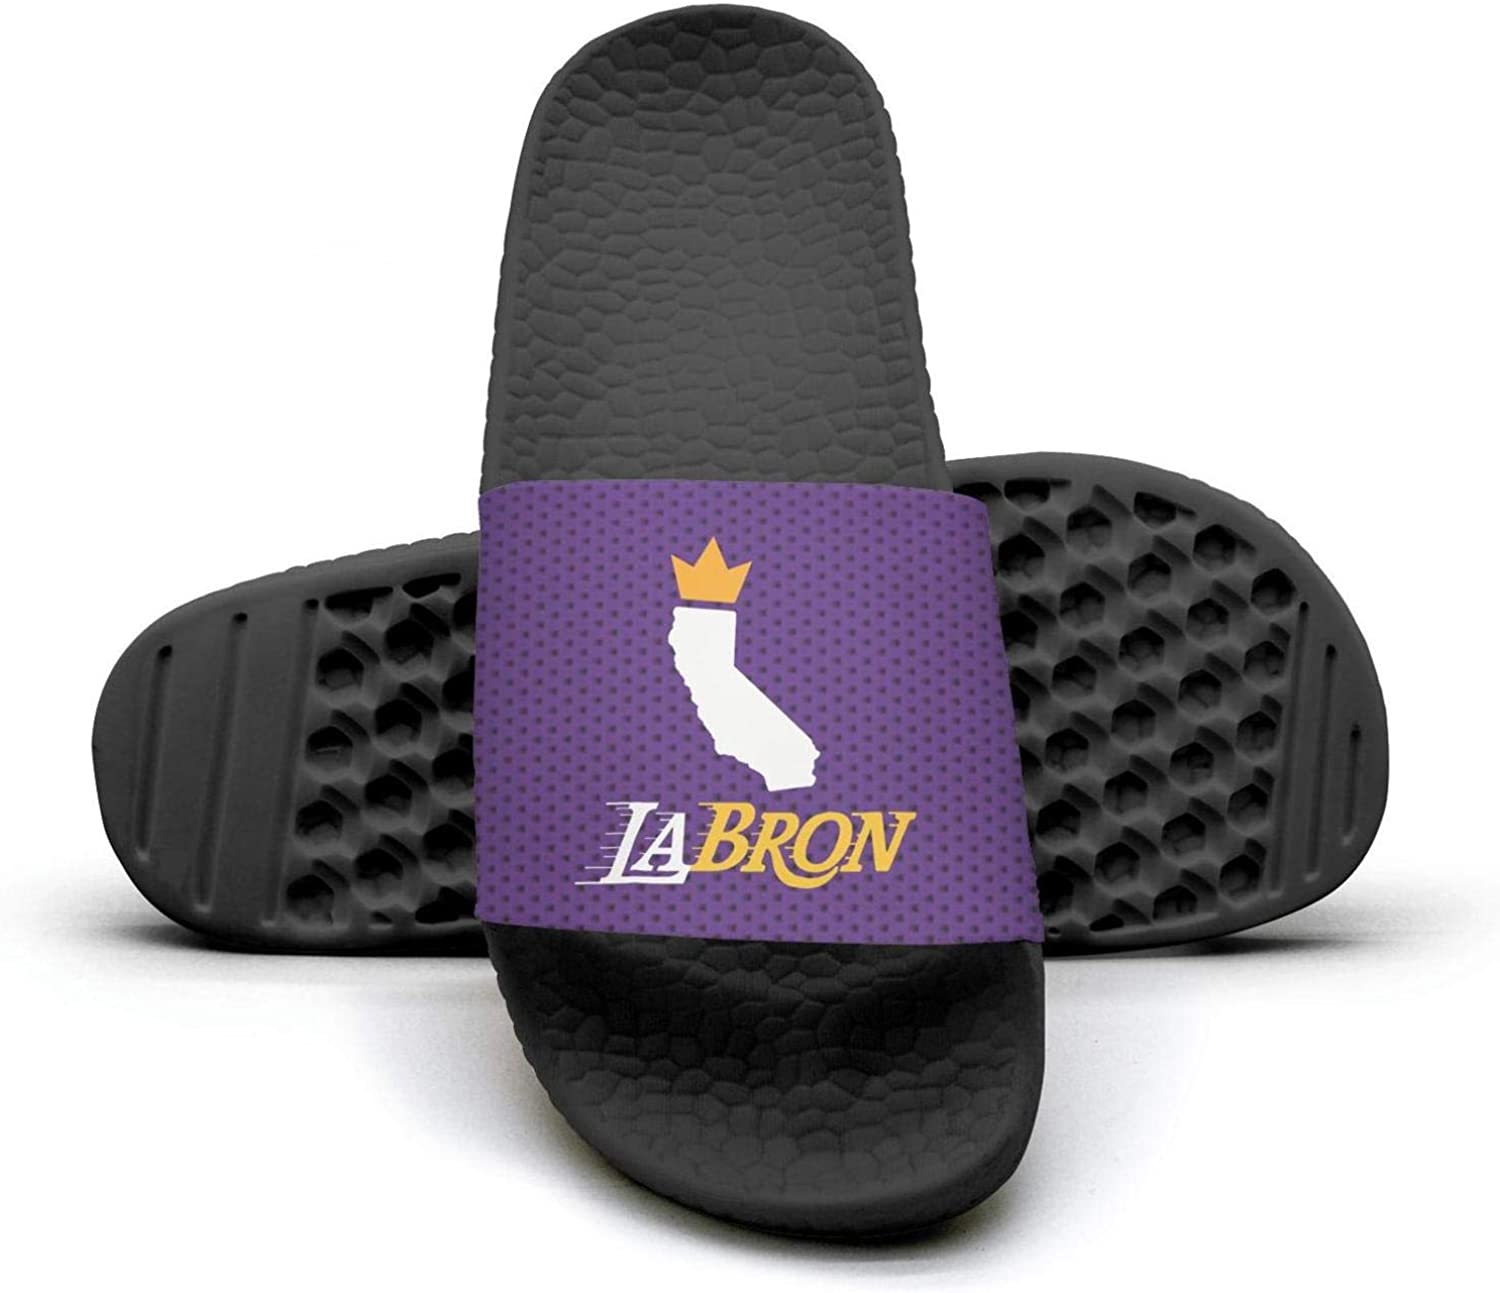 ADIDII Womens Printed Non-Slip Slippers Slides flip Flop Sandals La_Bron_Yellow_Logo_Basketball Summer Soft